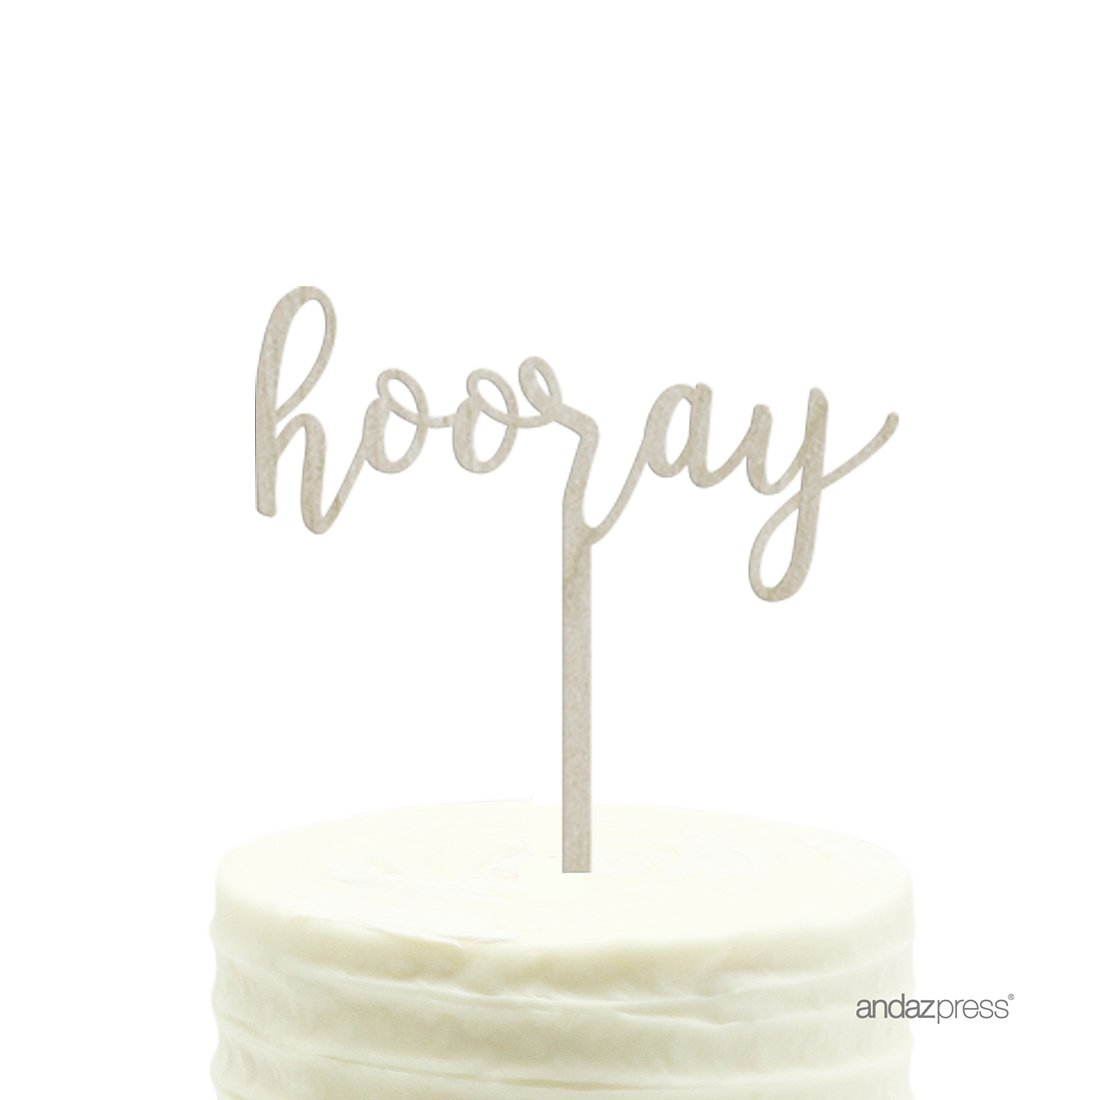 Andaz Press Party Wood Cake Toppers, Hooray, 1-Pack, High School College University Graduation Decor Decorations